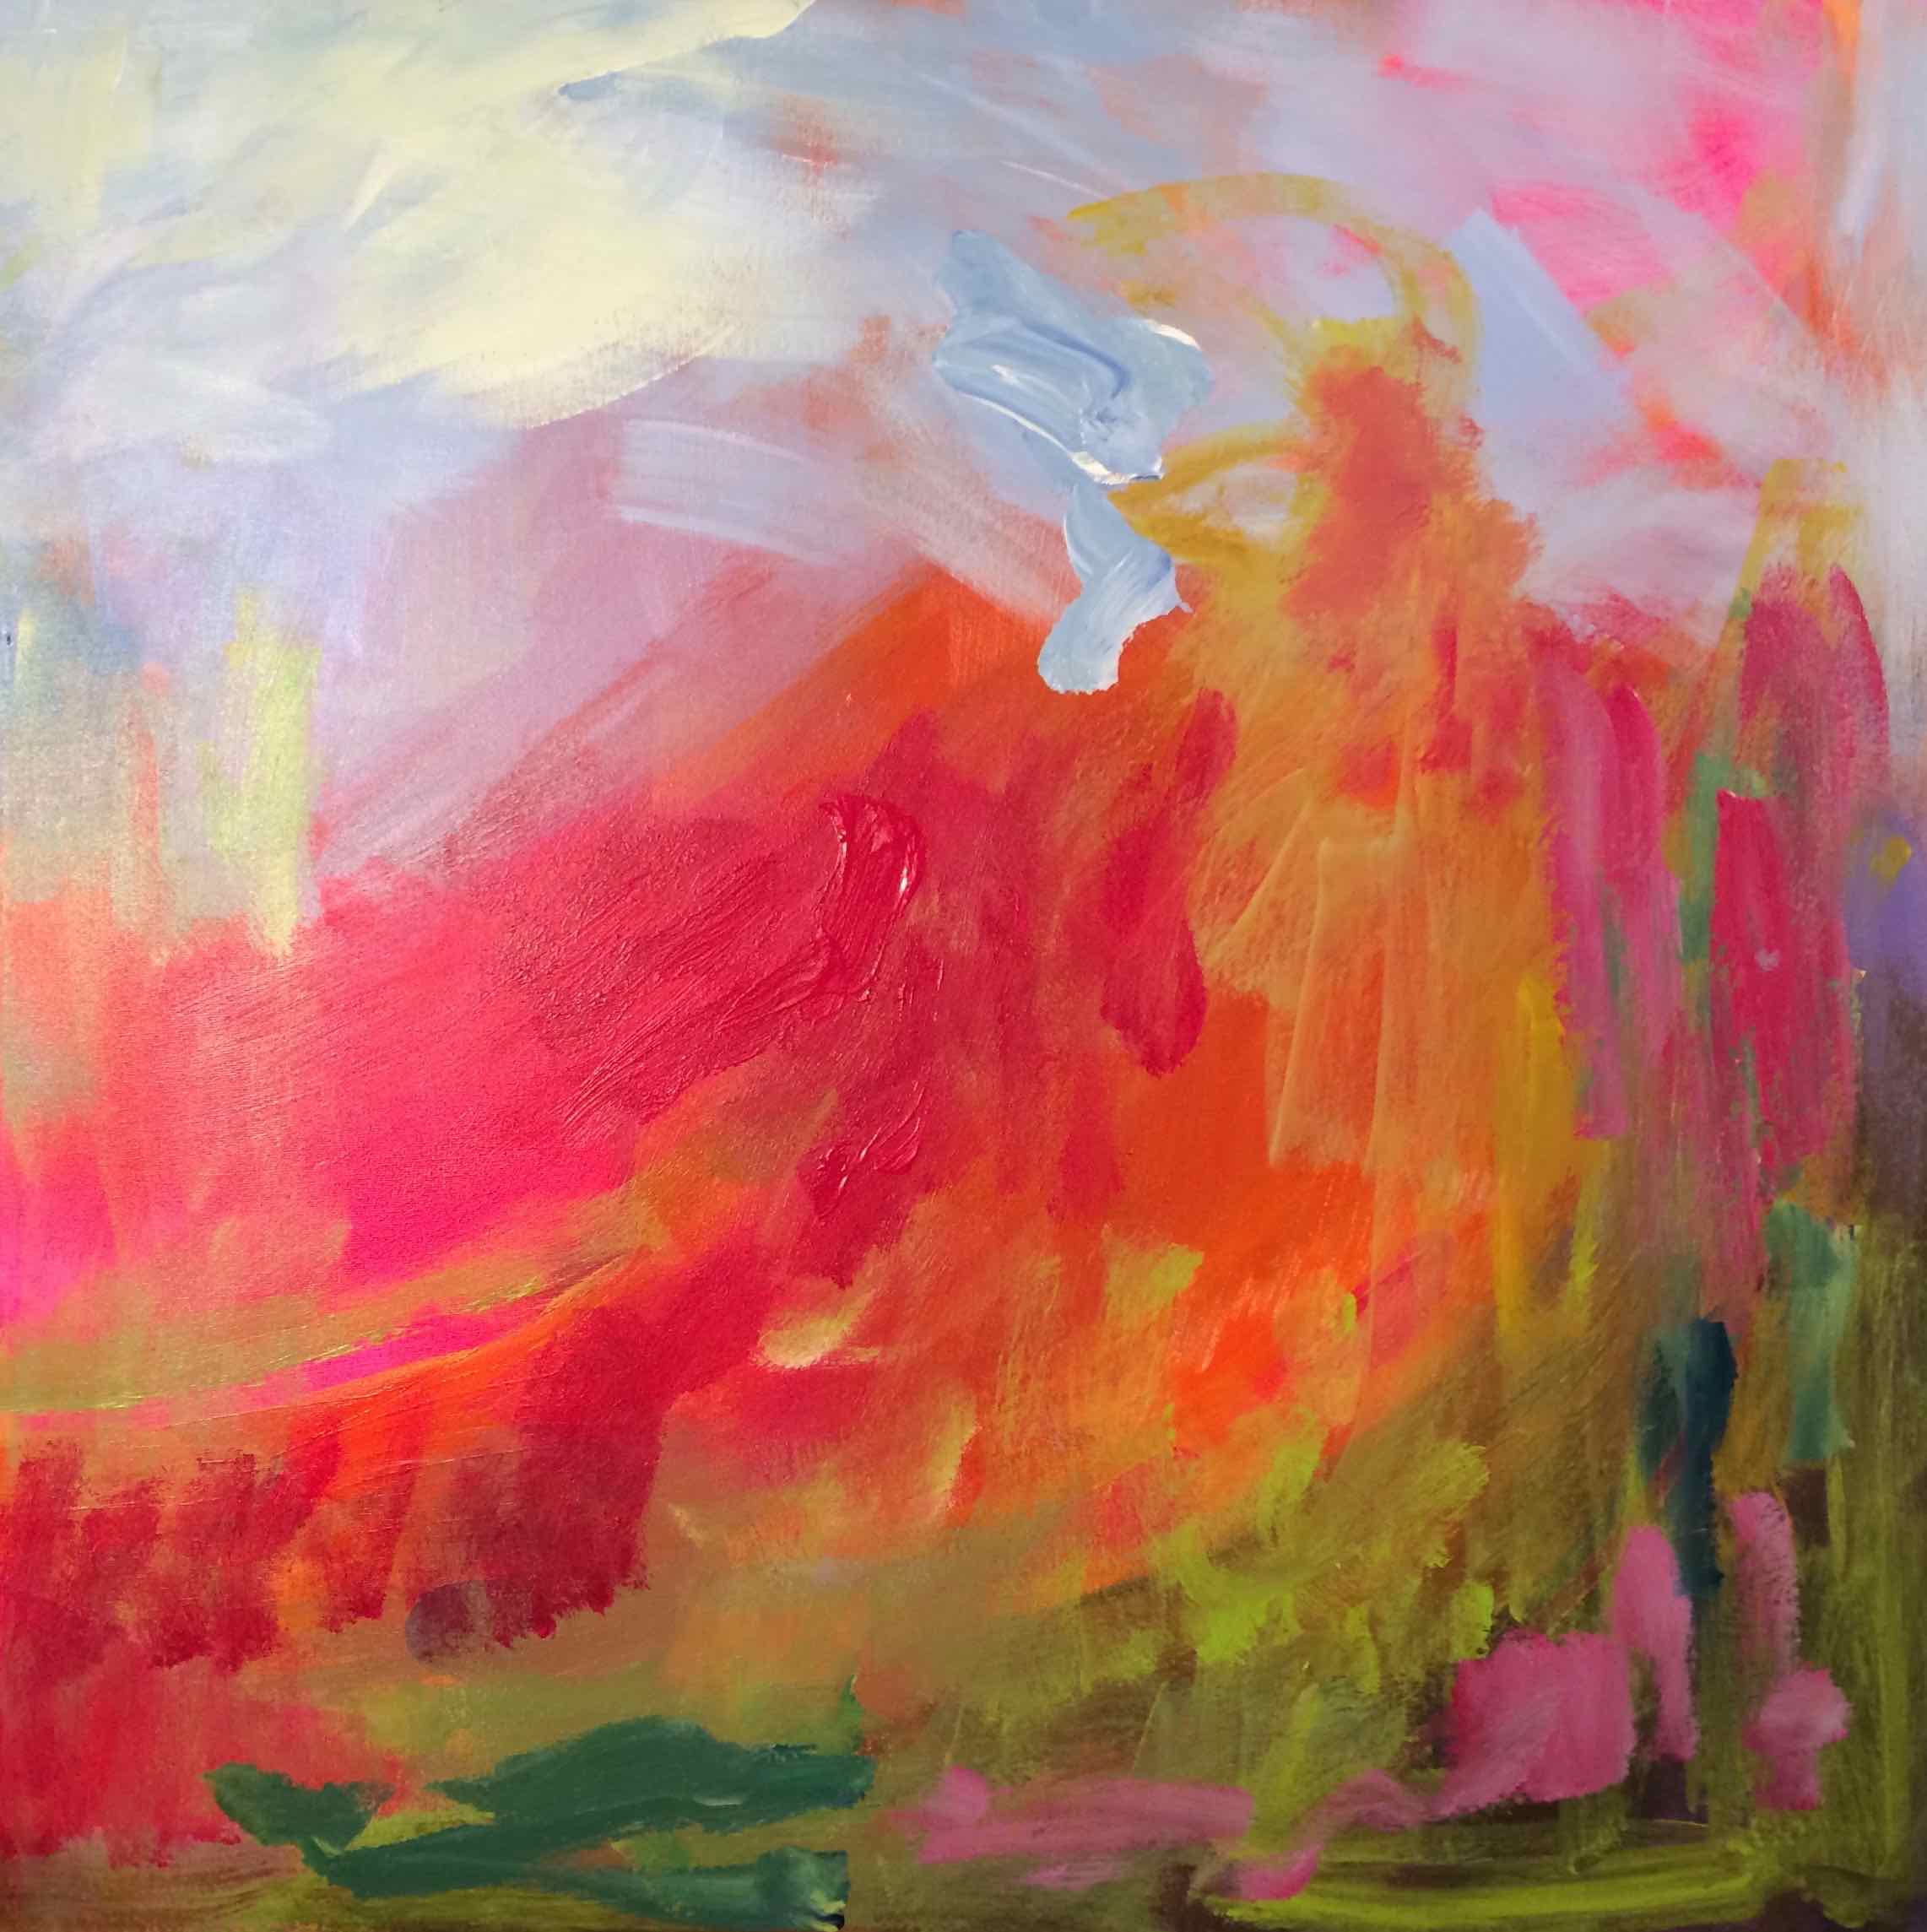 Pink Glow, Oil on Canvas, 30 x 30, $800